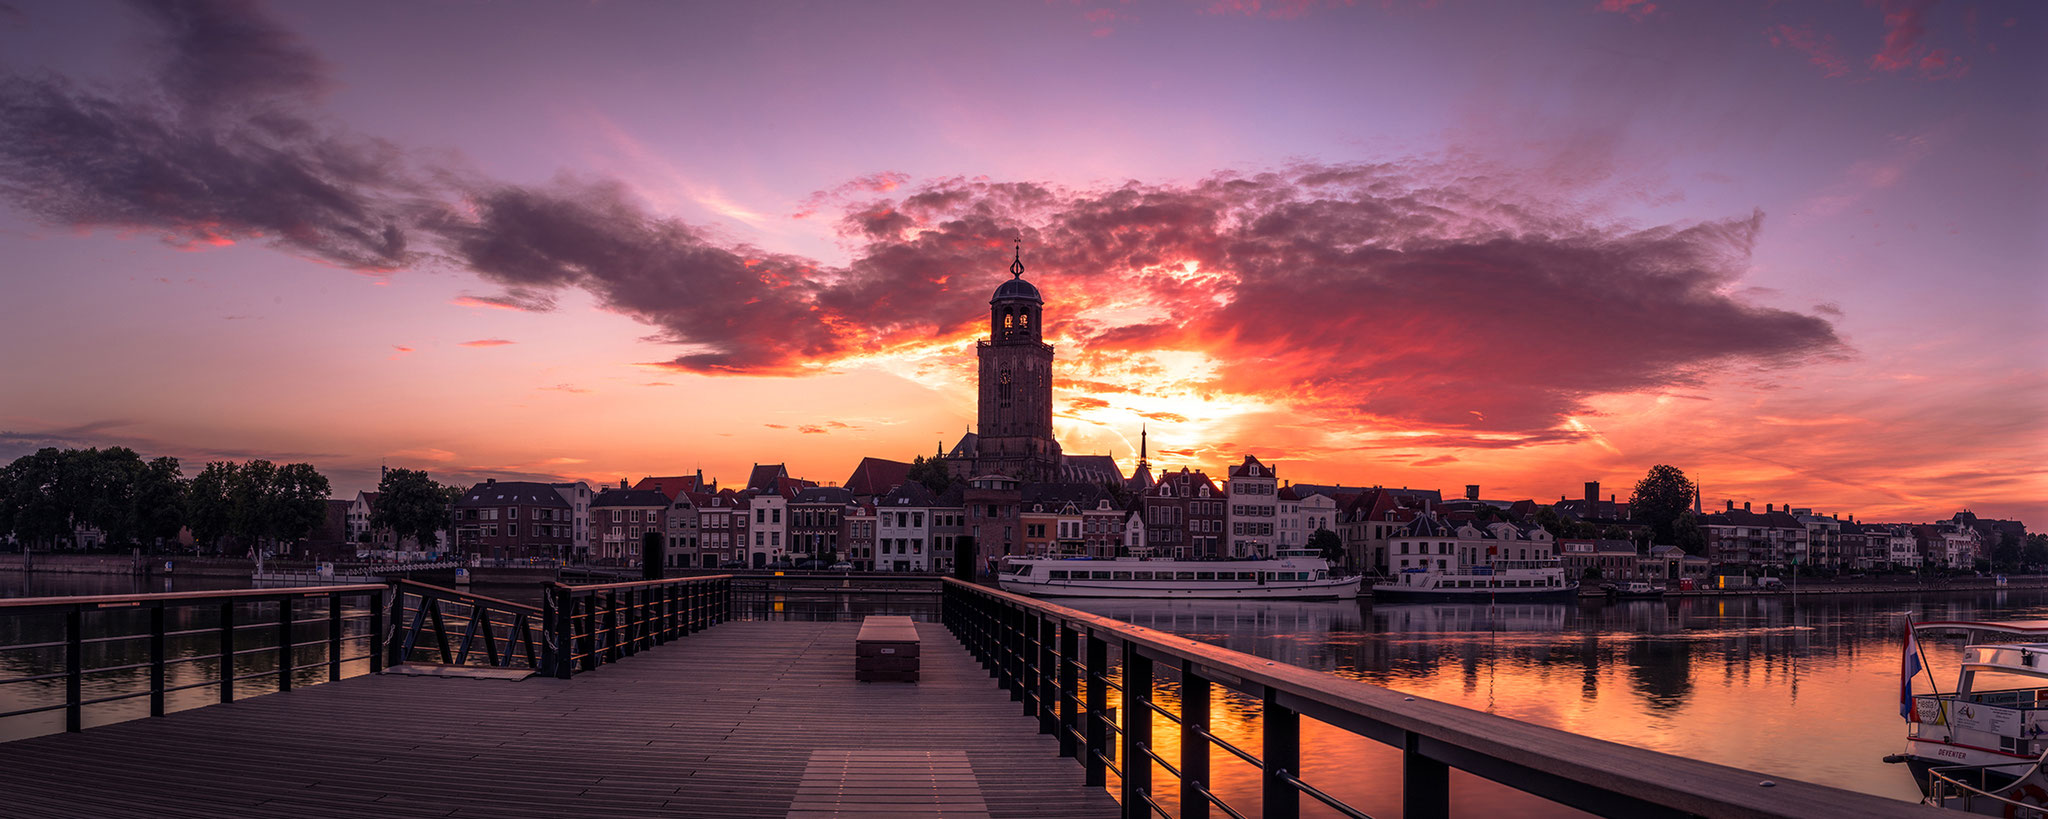 Deventer, the Netherlands, Martijn van Steenbergen, © 2018